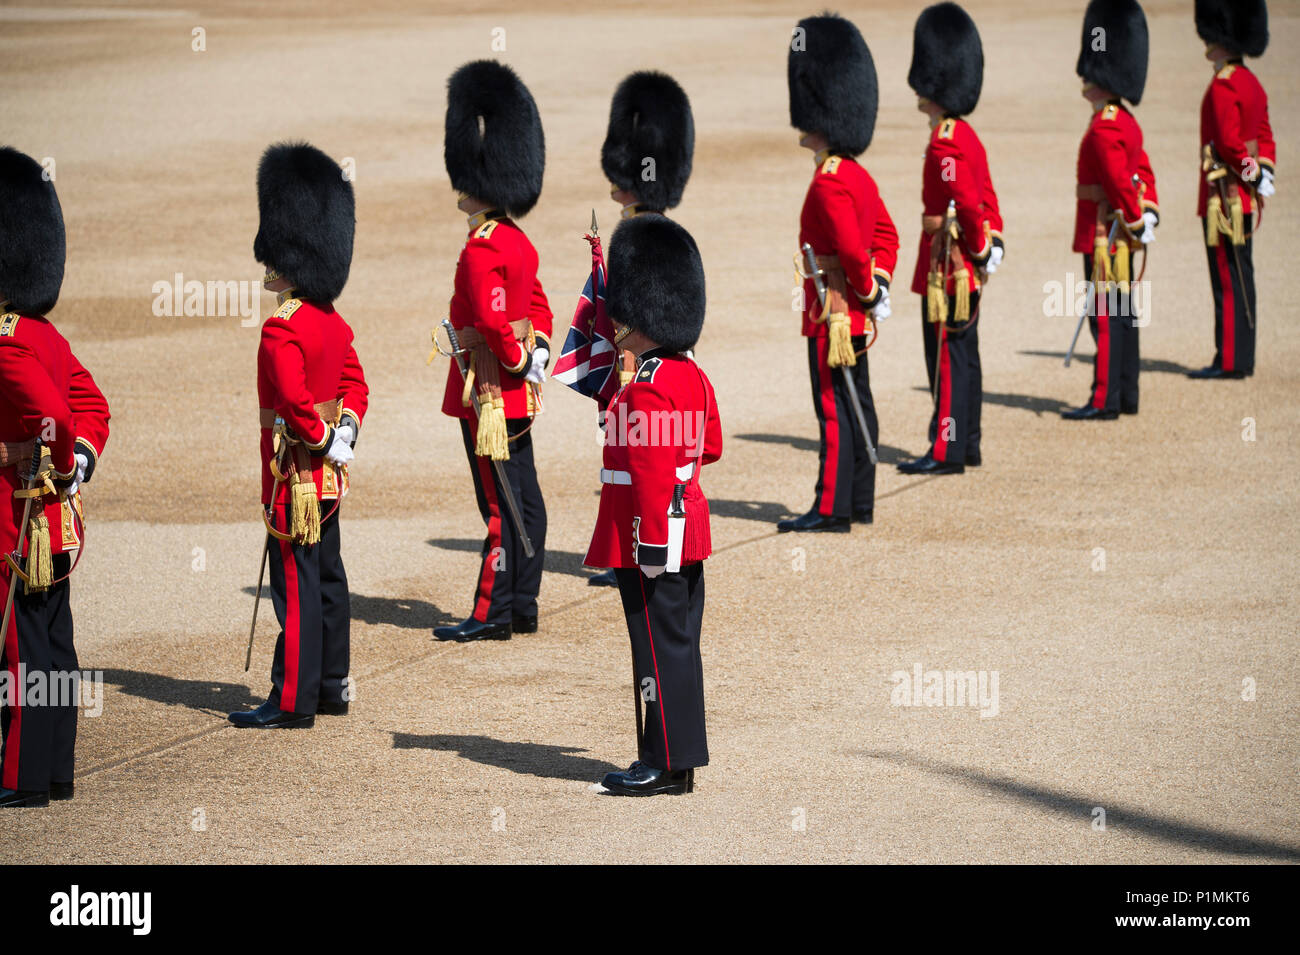 9 June 2018, London, UK. Trooping the Colour ceremony in Horse Guards Parade, The Queens Birthday Parade. Credit: Malcolm Park/Alamy Stock Photo